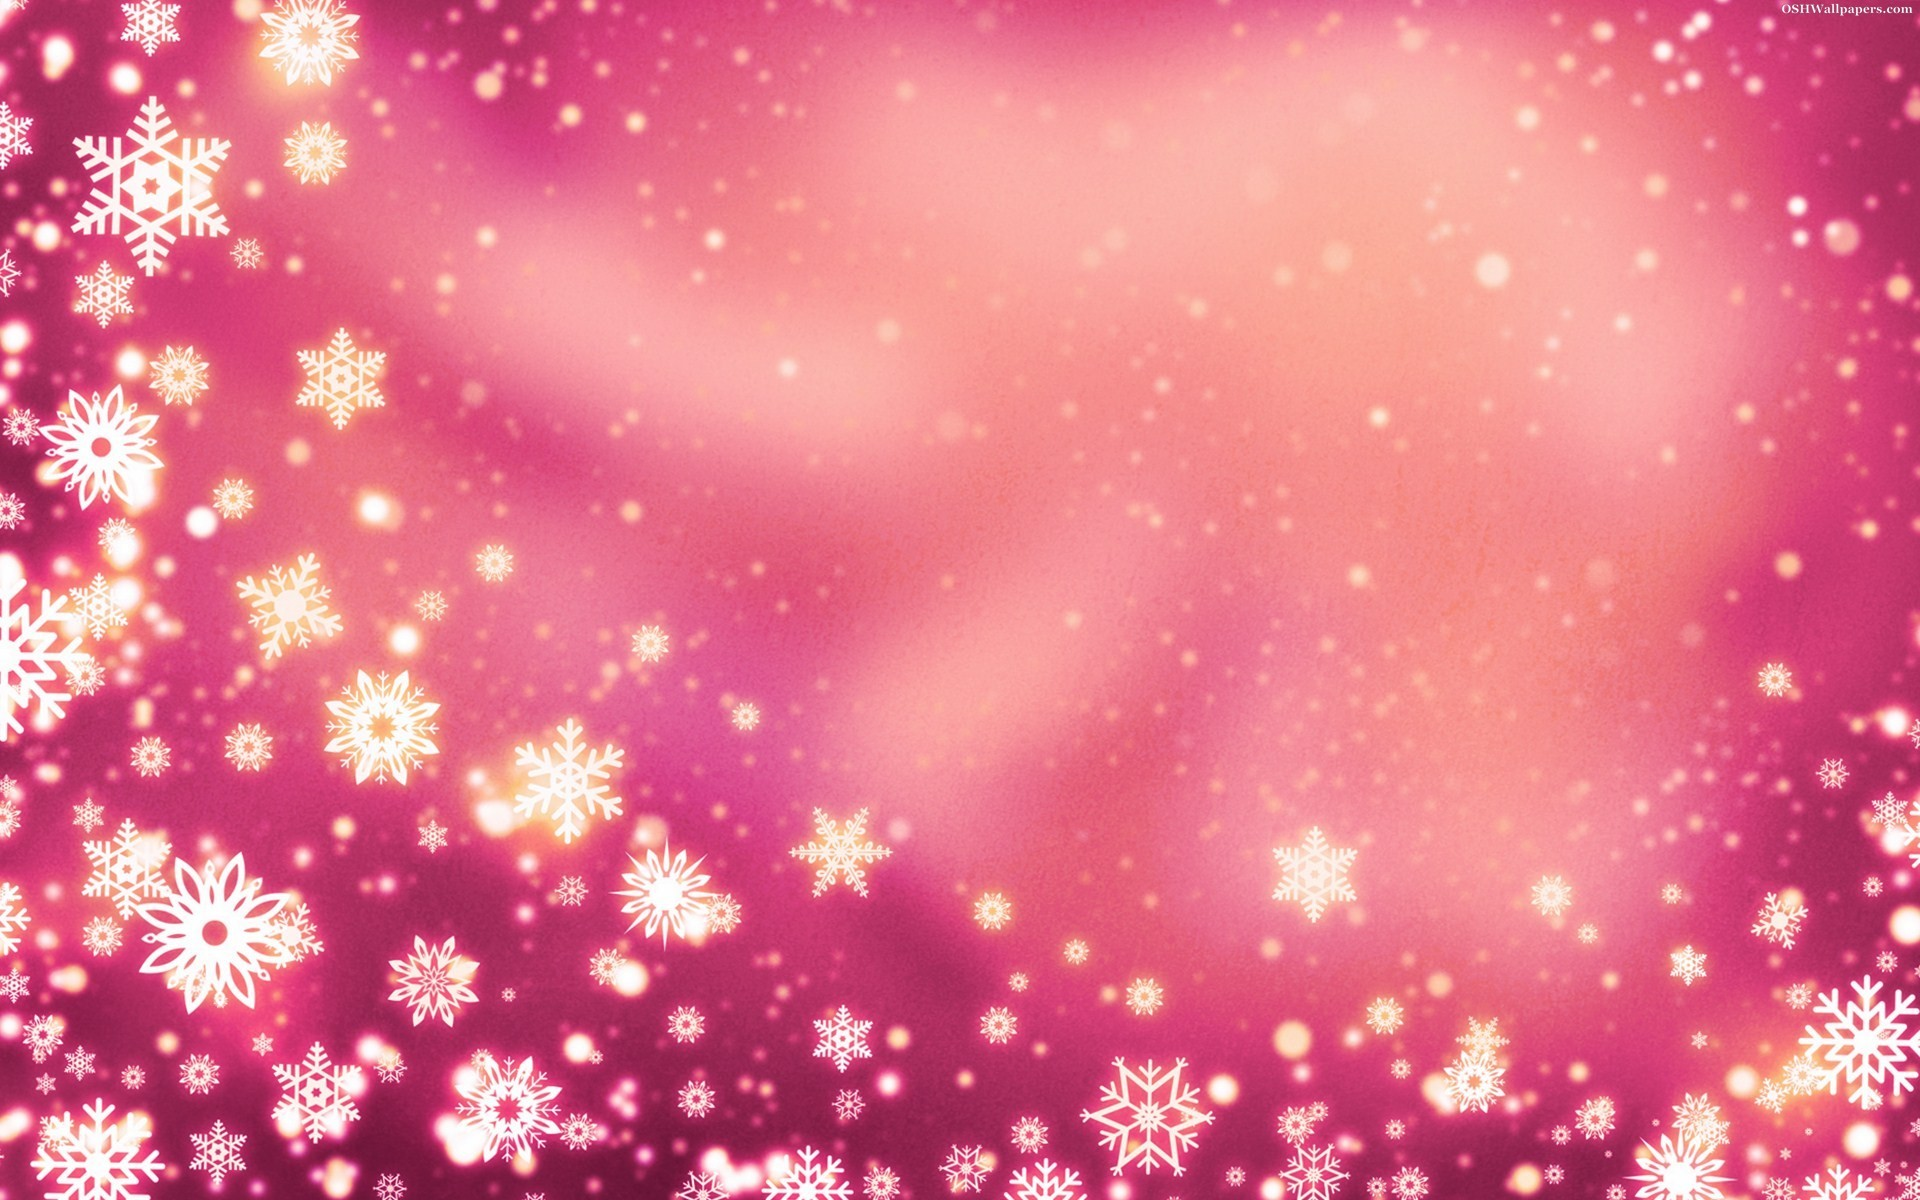 pink christmas backgrounds 37 images